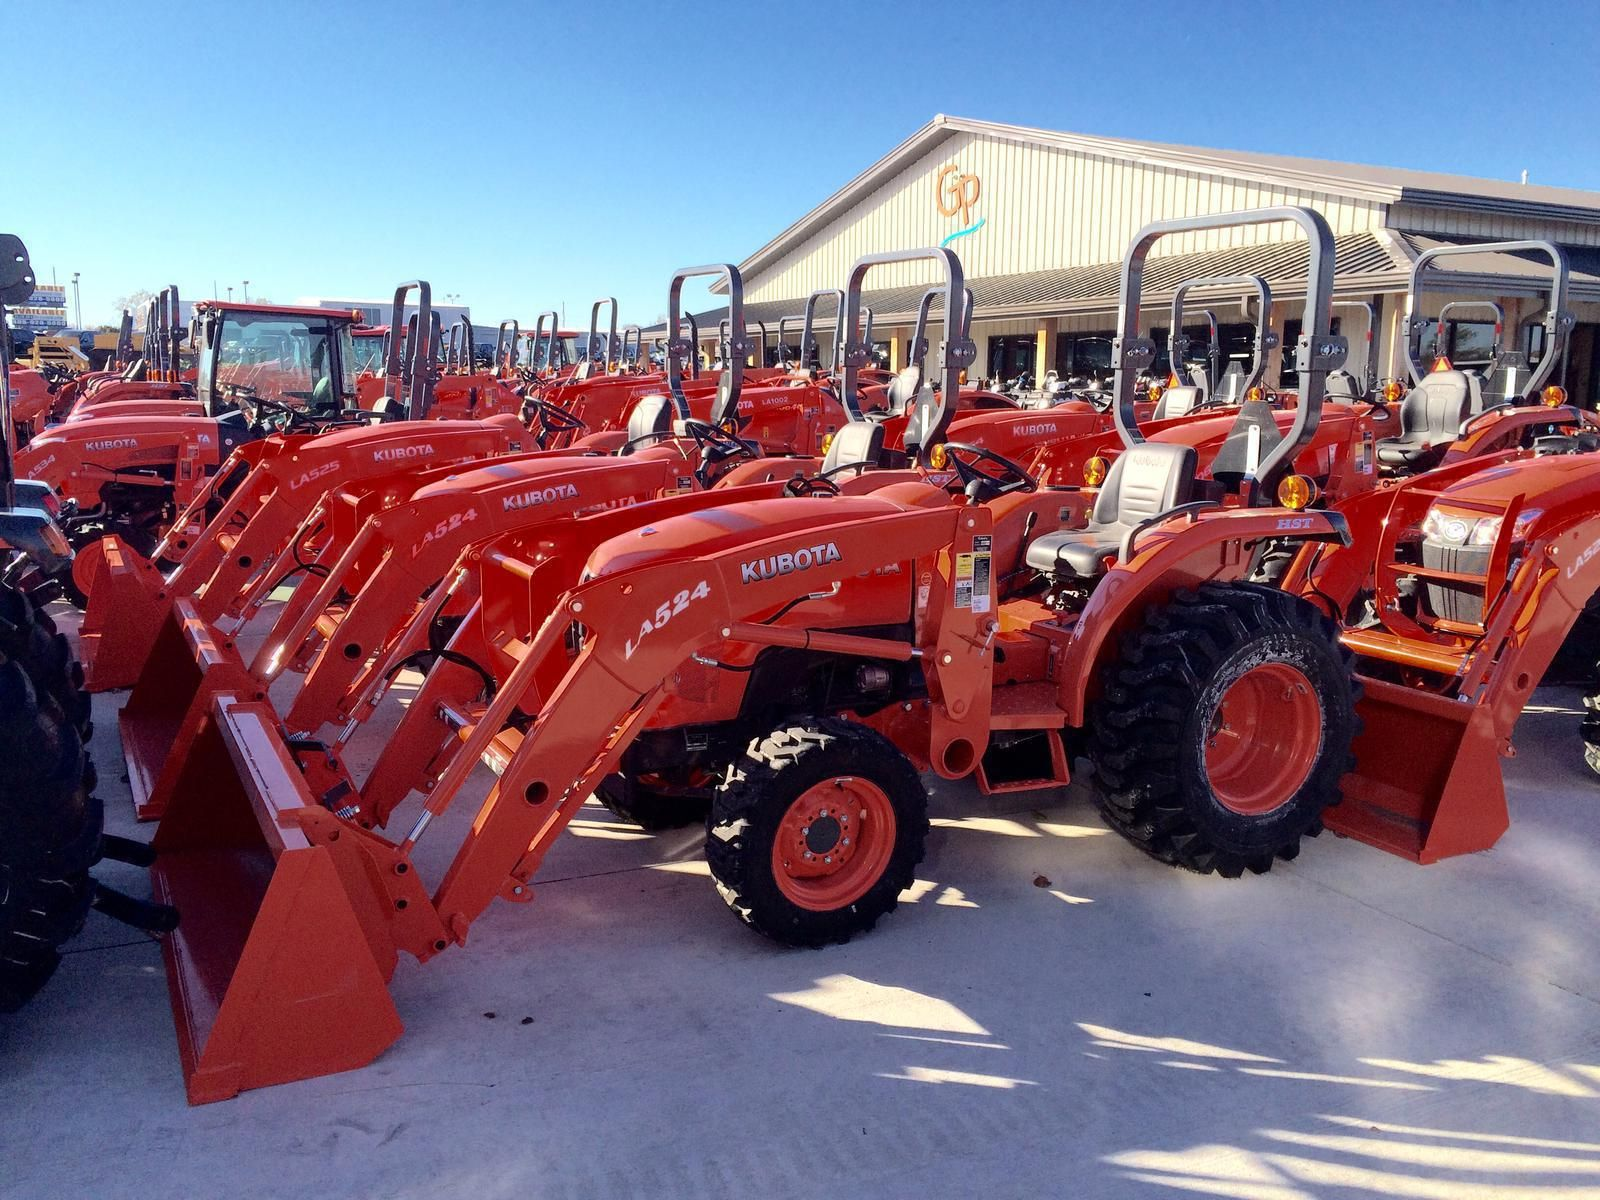 Another Tier 3 Kubota Tractor On Sale Like This L3200hst With 32hp Of Kubota Diesel Power Front End Loader Bucket And A Hydr Kubota Tractors Kubota Tractors